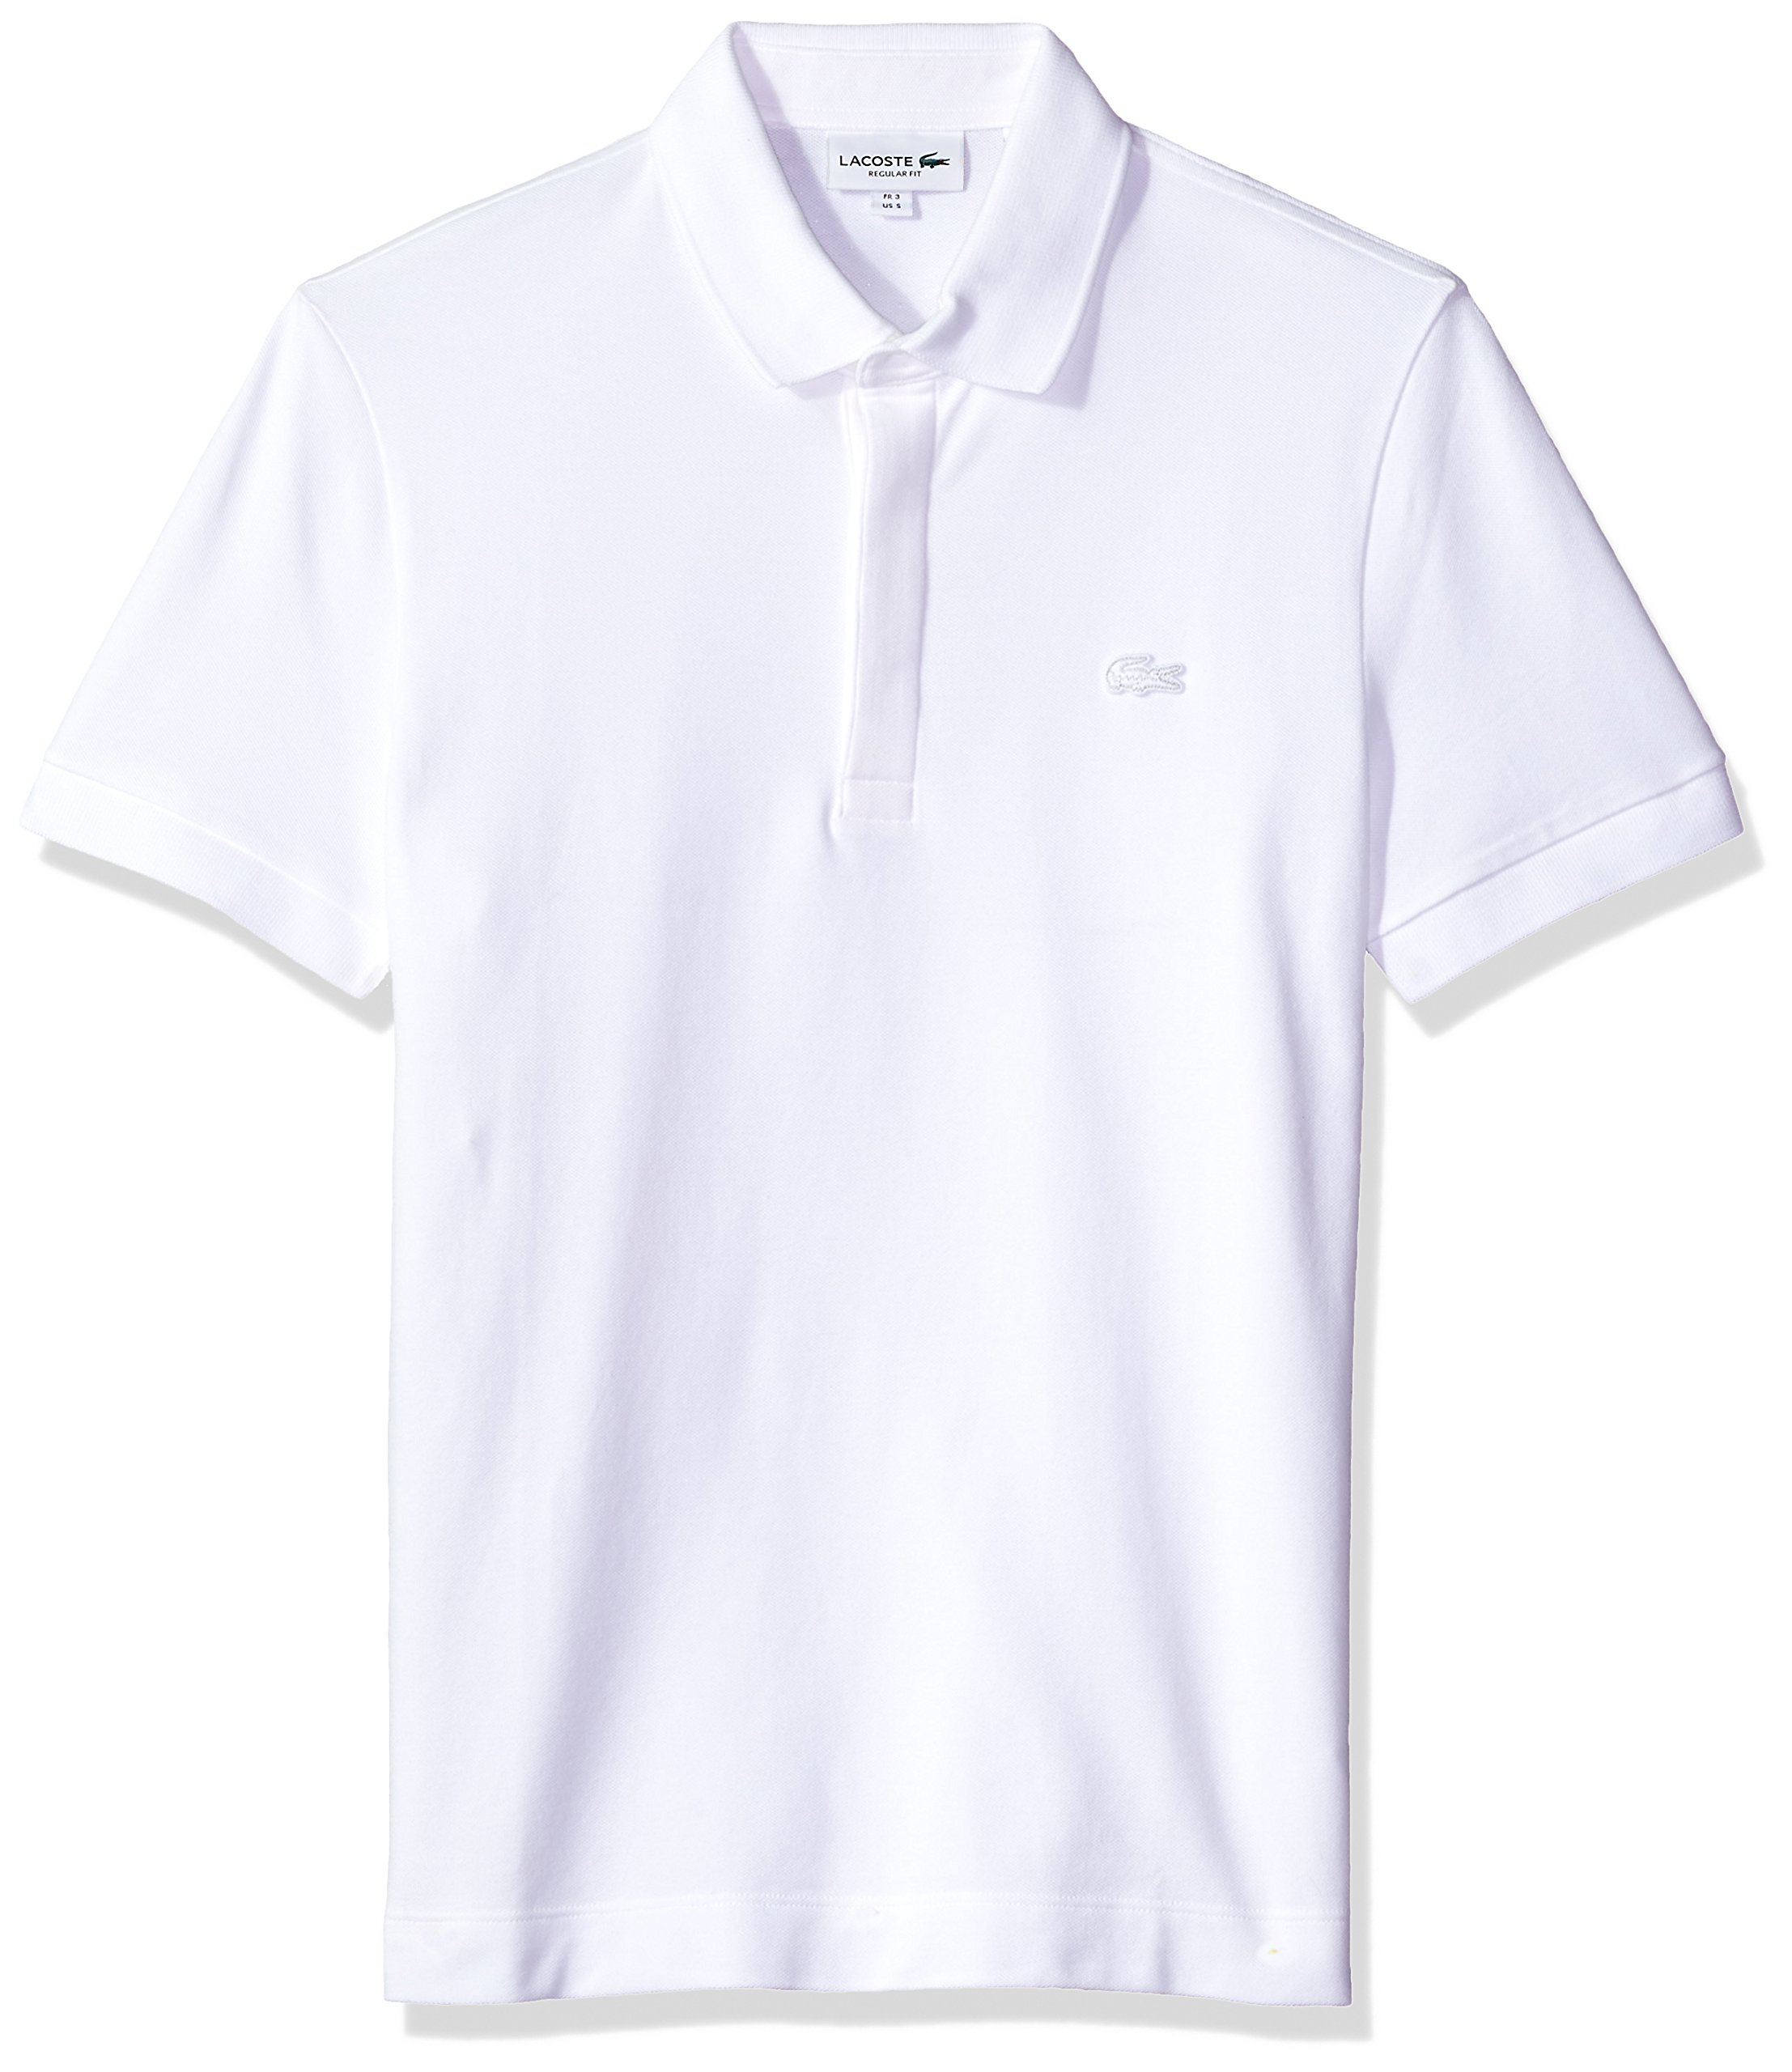 ecdb600eaa Galleon - Lacoste Men's Short Sleeve Solid Stretch Pique Regular Fit Paris  Polo, PH5522, White Large